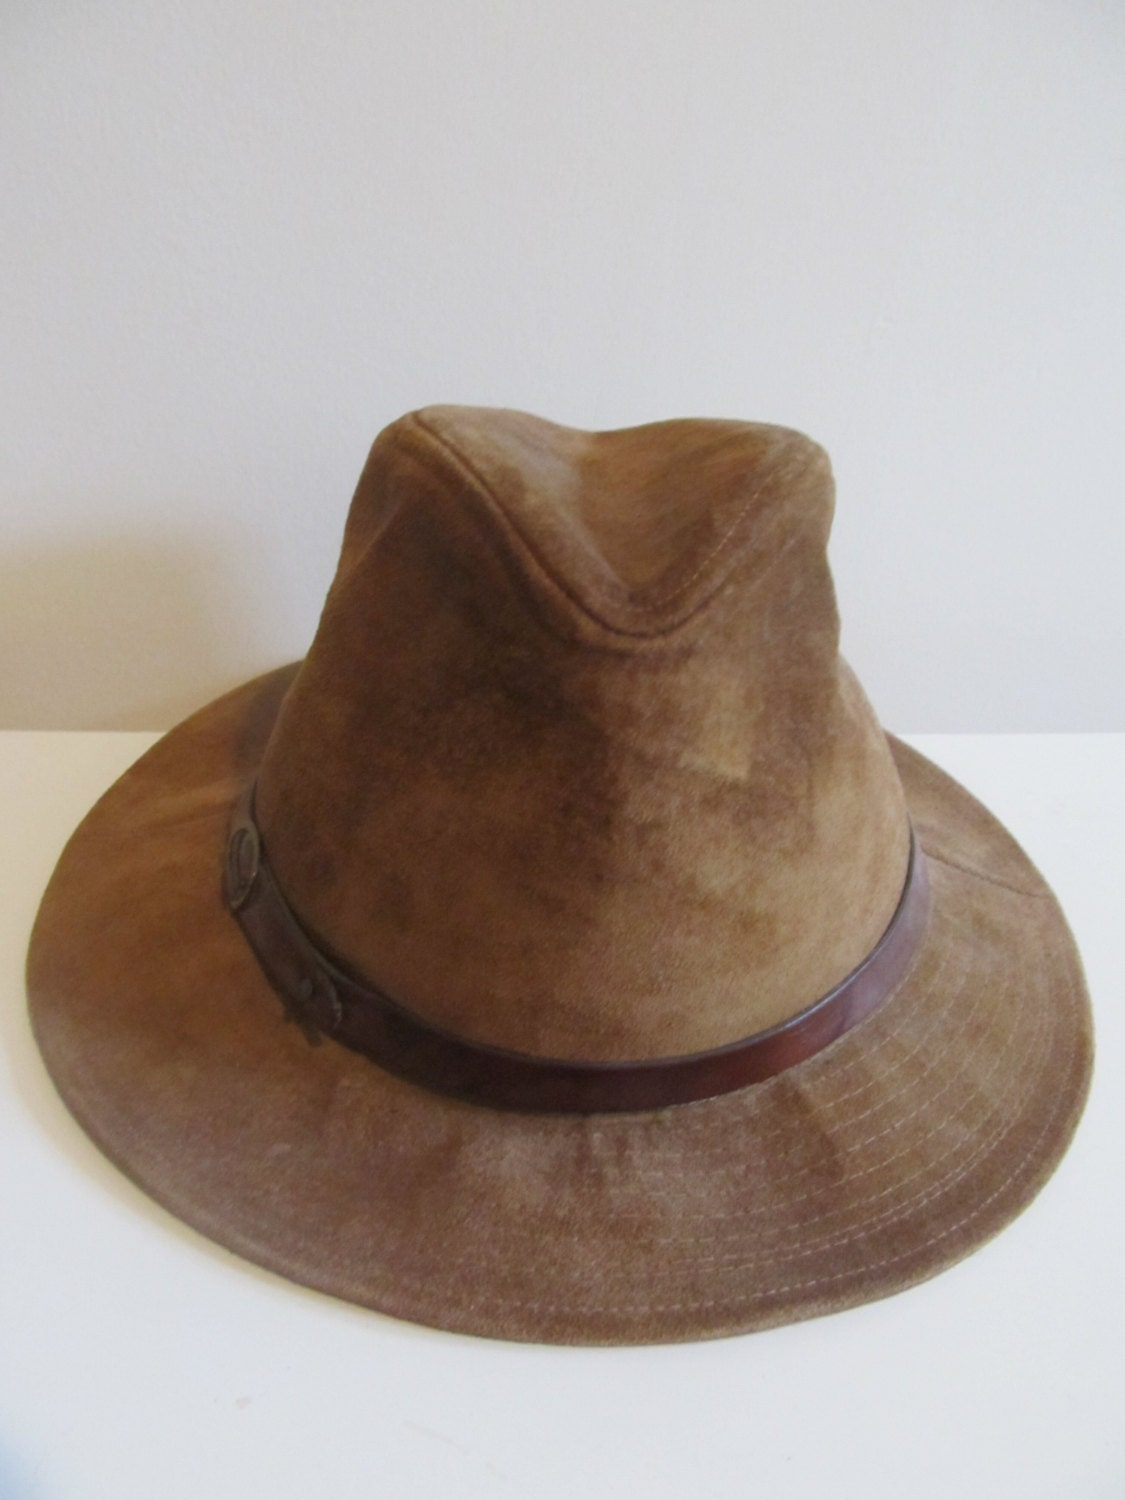 Mens Suede Hat ($ - $): 30 of items - Shop Mens Suede Hat from ALL your favorite stores & find HUGE SAVINGS up to 80% off Mens Suede Hat, including GREAT DEALS like Jacaru Cowboy Hat Mens Brush Suede Vented Wallaroo Suede ($).